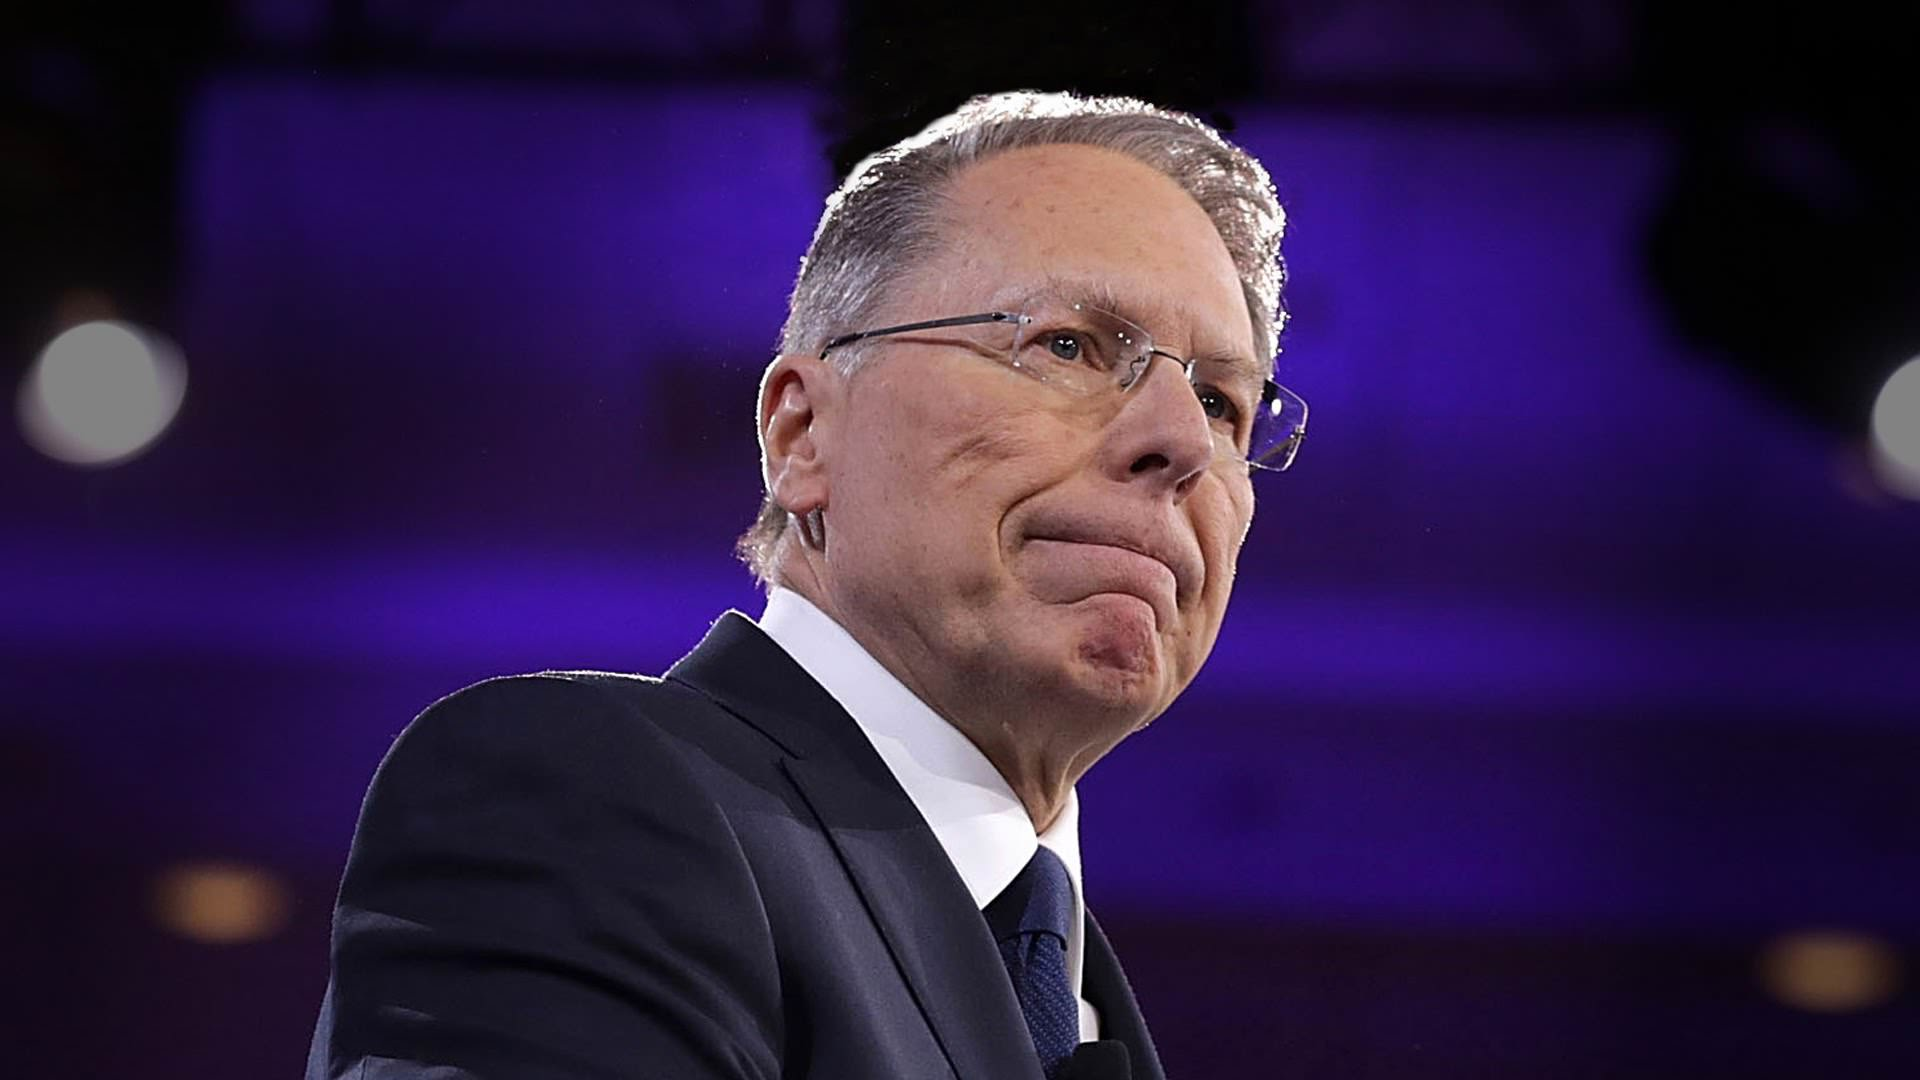 Watch Wayne LaPierre's CPAC Speed [2016]